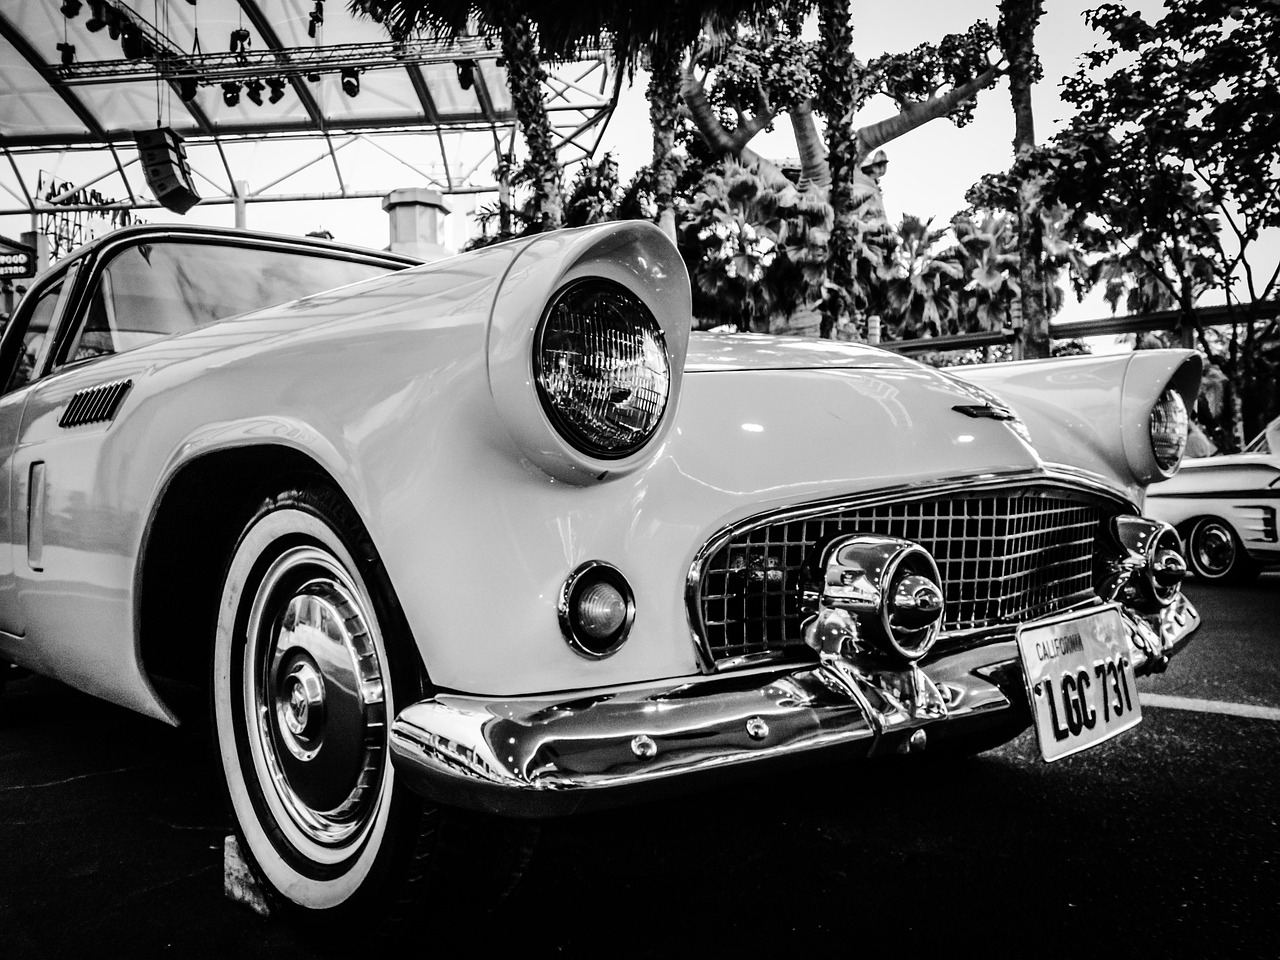 How do I know if my vehicle qualifies for classic car insurance?